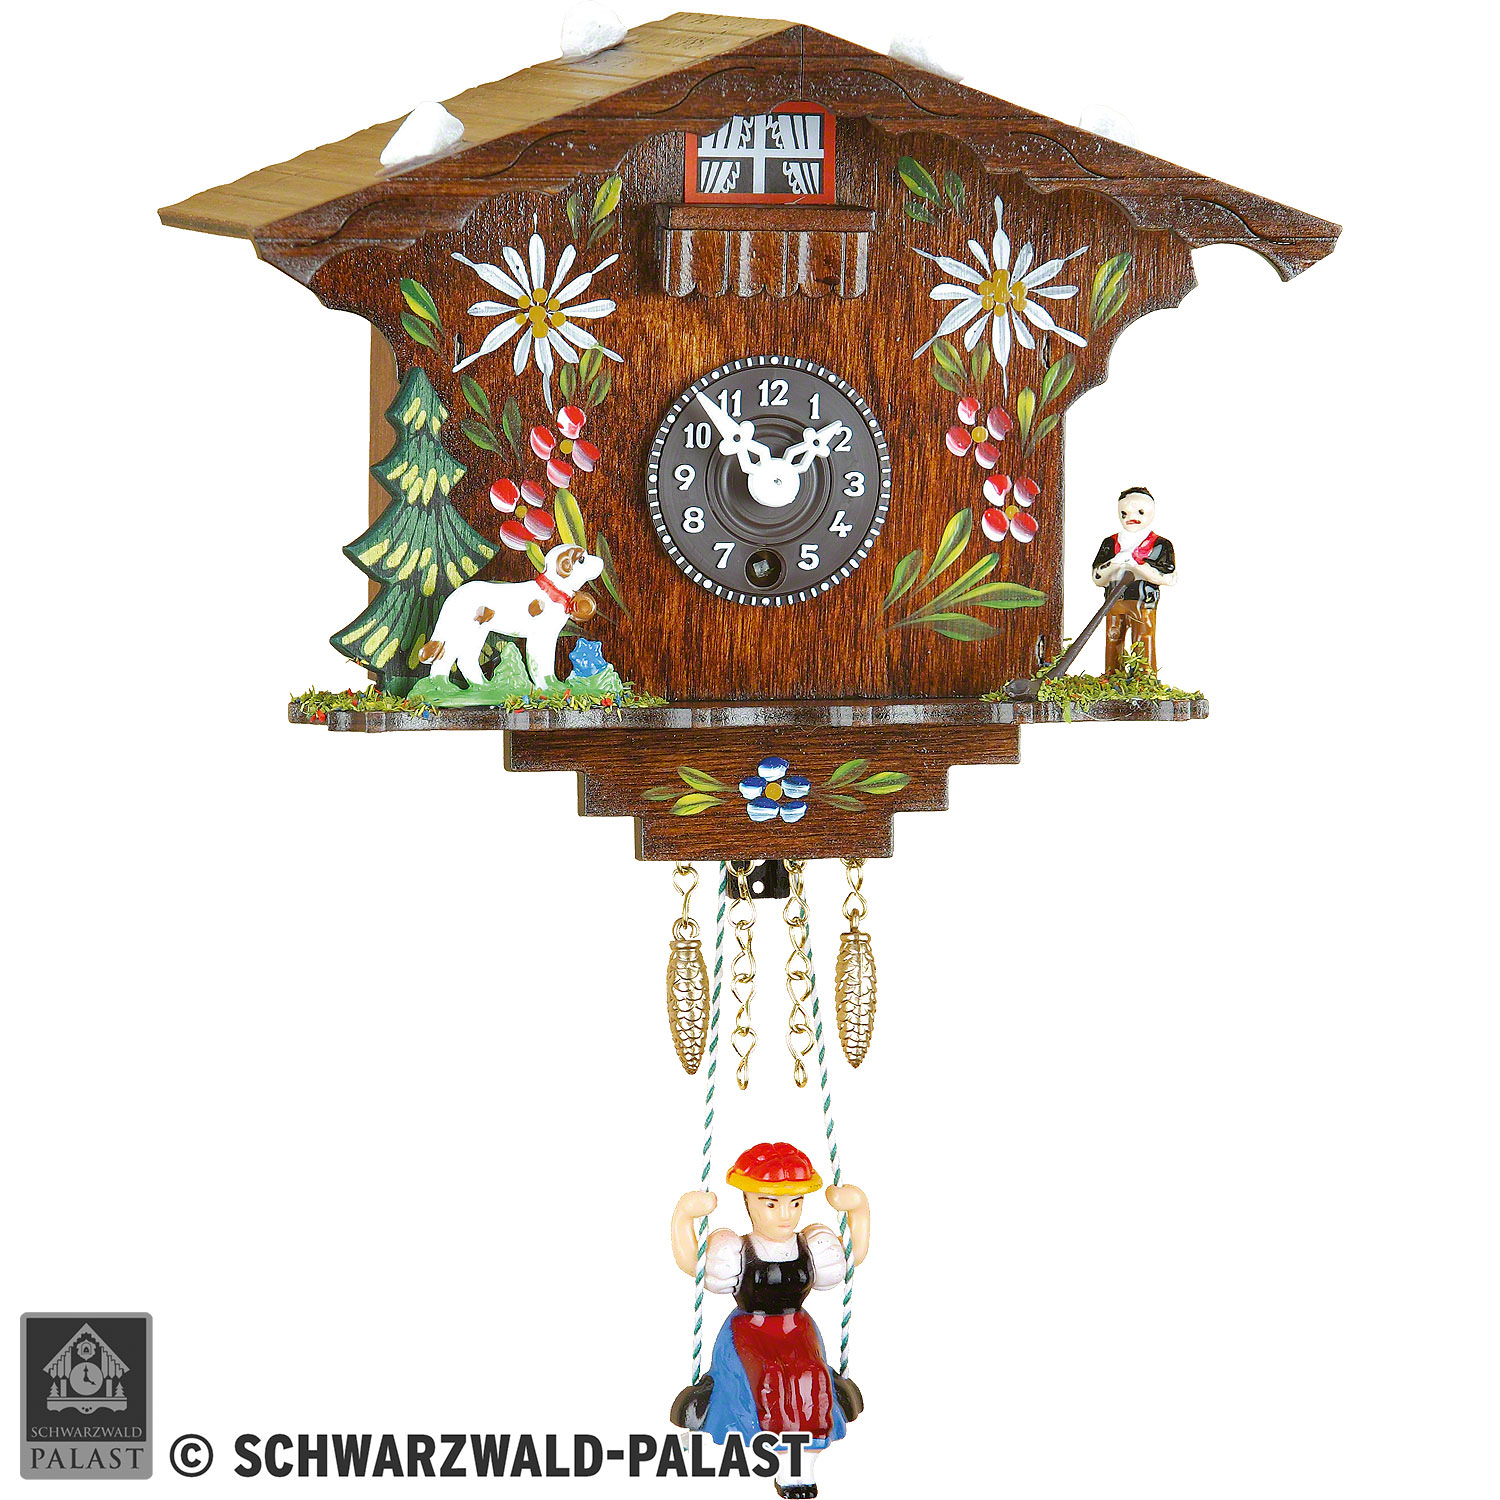 PMU Retro Style Vintage Wood Indoor Wall Clock with Swinging Pendulum,Black Forest Clock with Quartz Movement and Cuckoo Chime